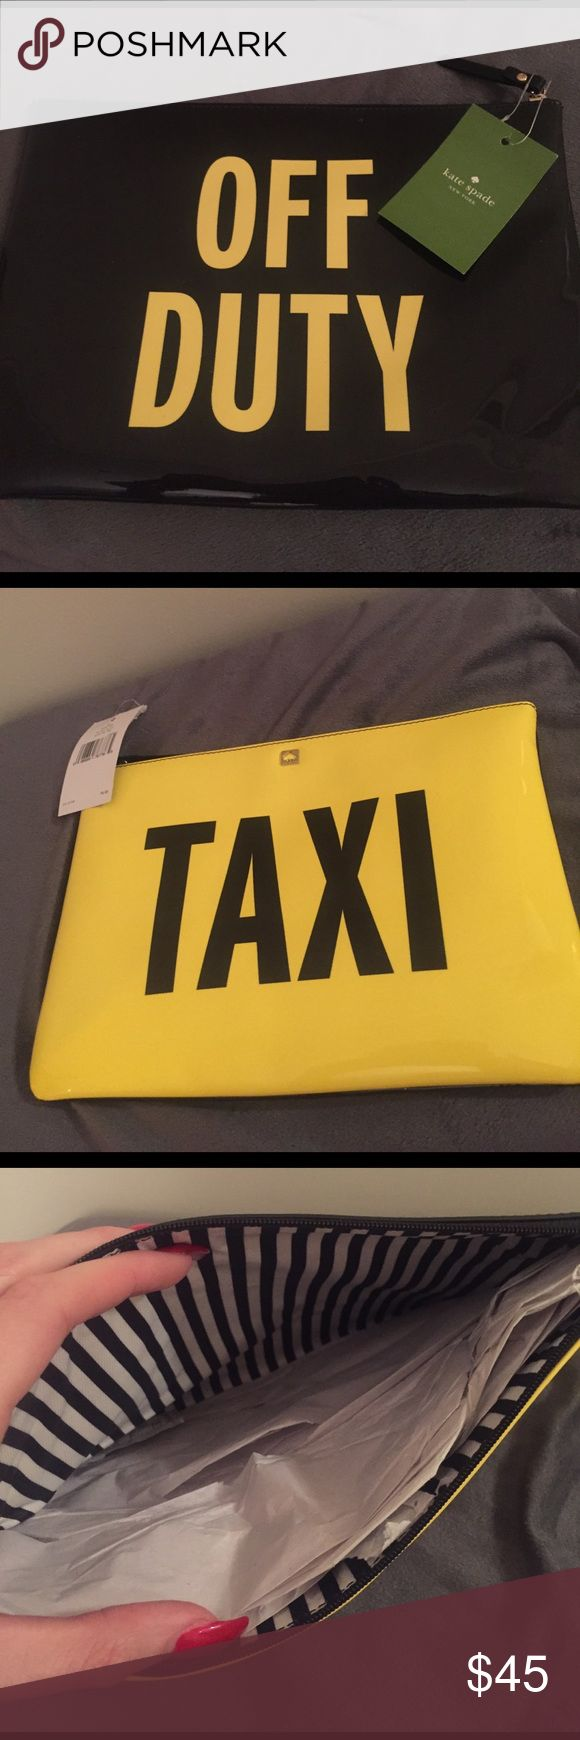 """Kate Spade """"Taxi"""" Clutch Patent Leather zip clutch!!! Bought to wear with a black and white dress but never got around to it. Tags still intact. Striped lining on the inside. kate spade Bags Clutches & Wristlets"""